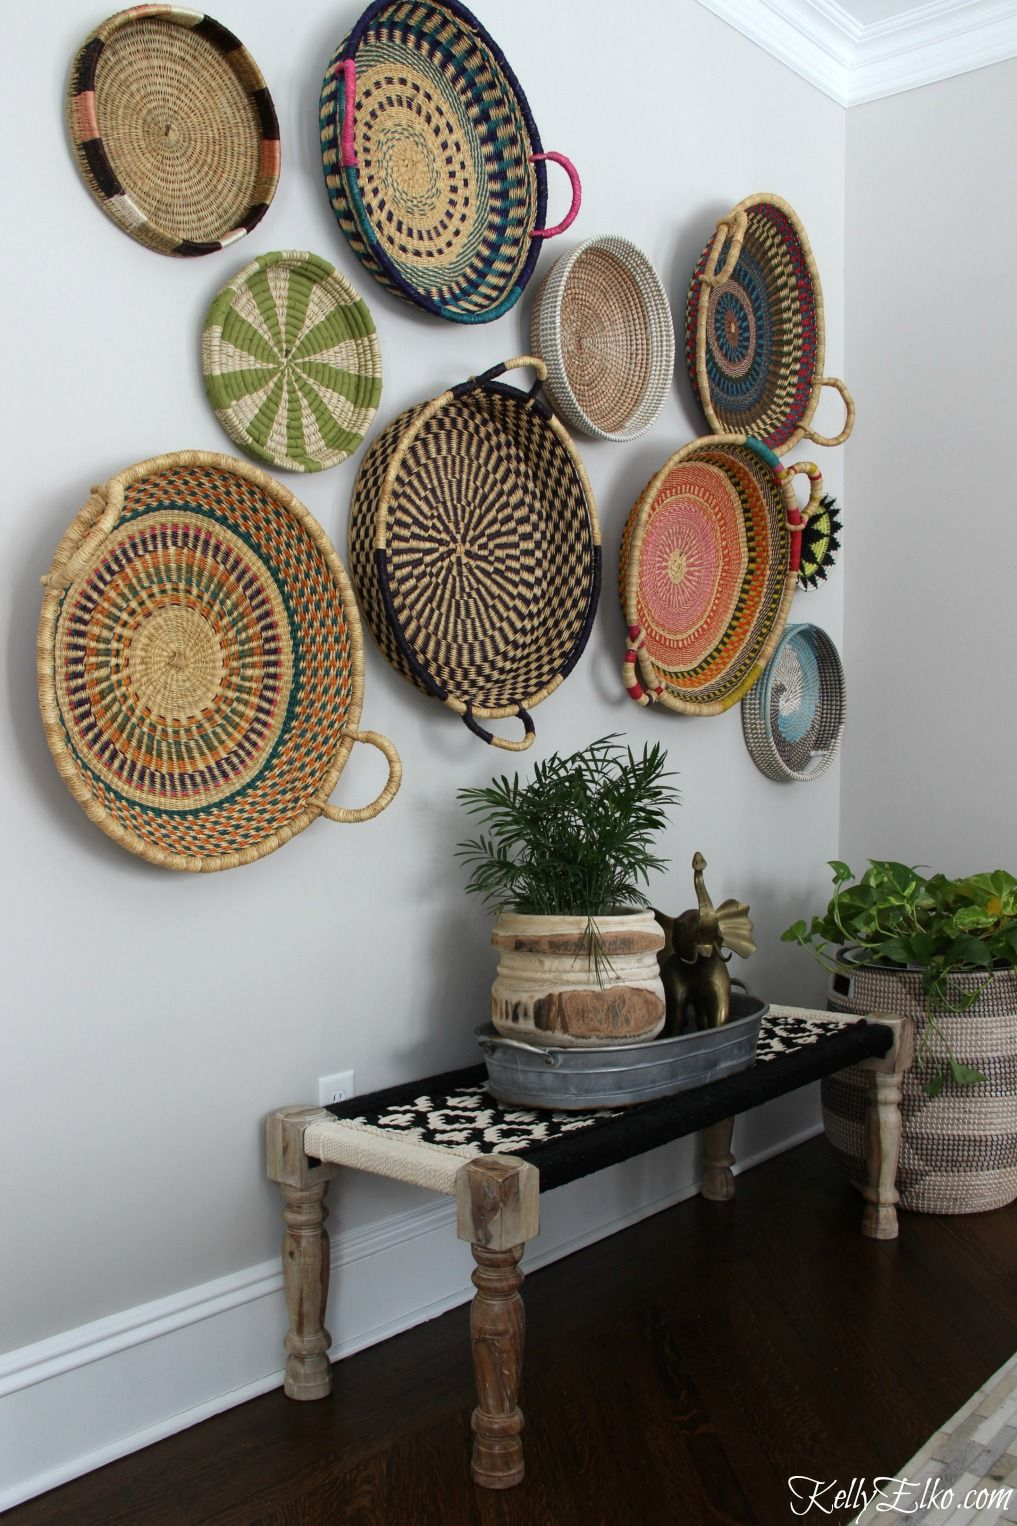 4 Piece Handwoven Wheel Wall Decor Sets Within Well Liked Colorful Basket Gallery Wall (Gallery 4 of 20)